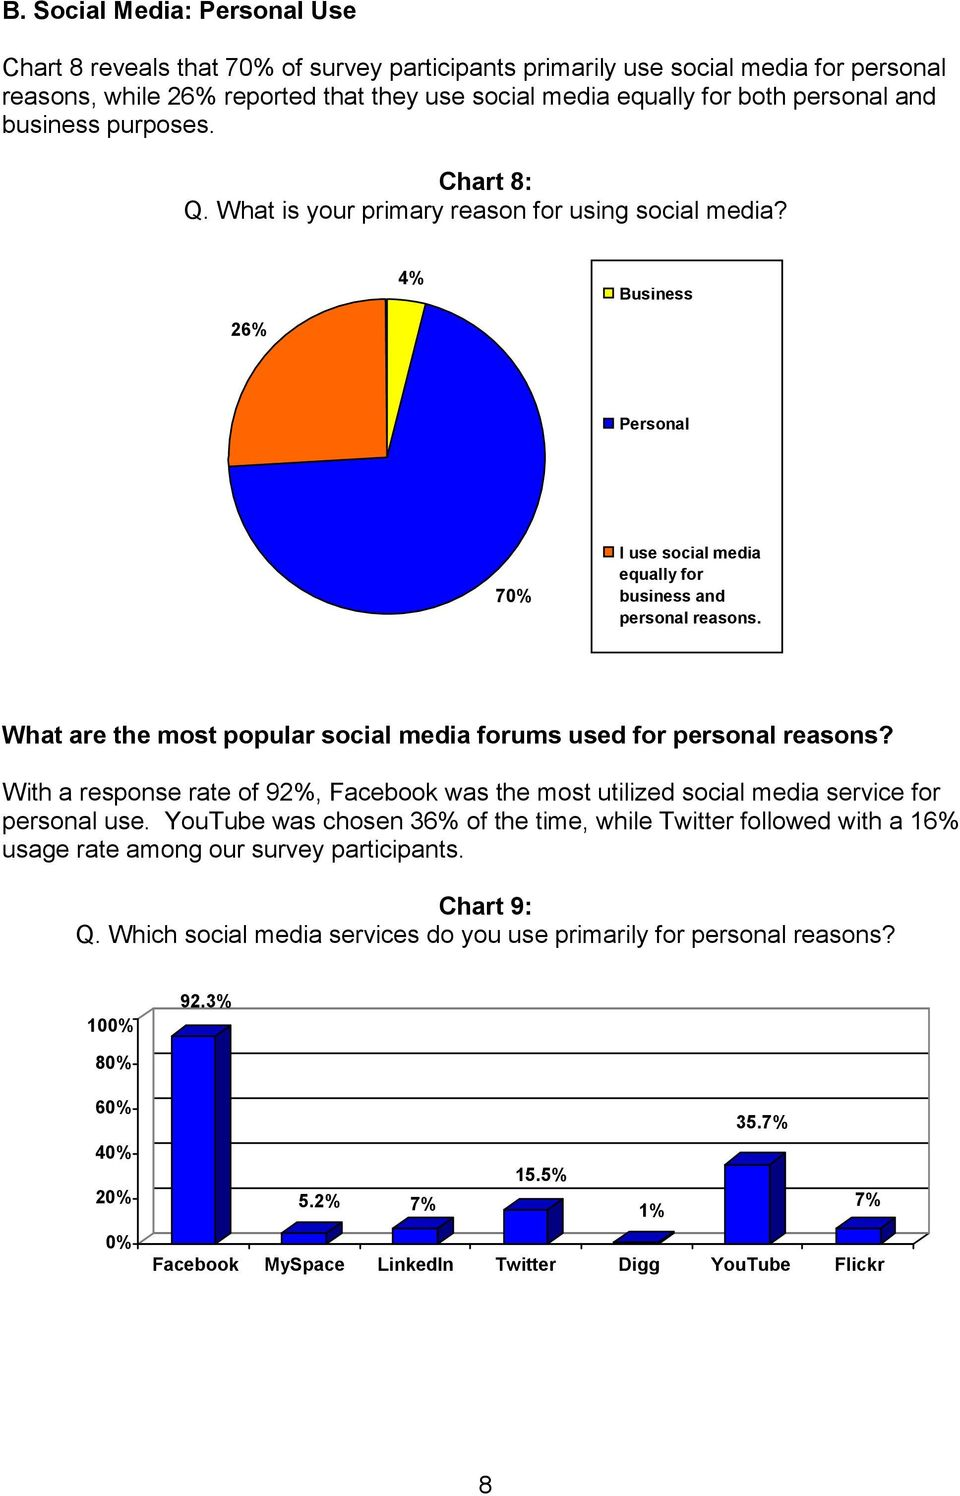 What are the most popular social media forums used for personal reasons? With a response rate of 92%, Facebook was the most utilized social media service for personal use.